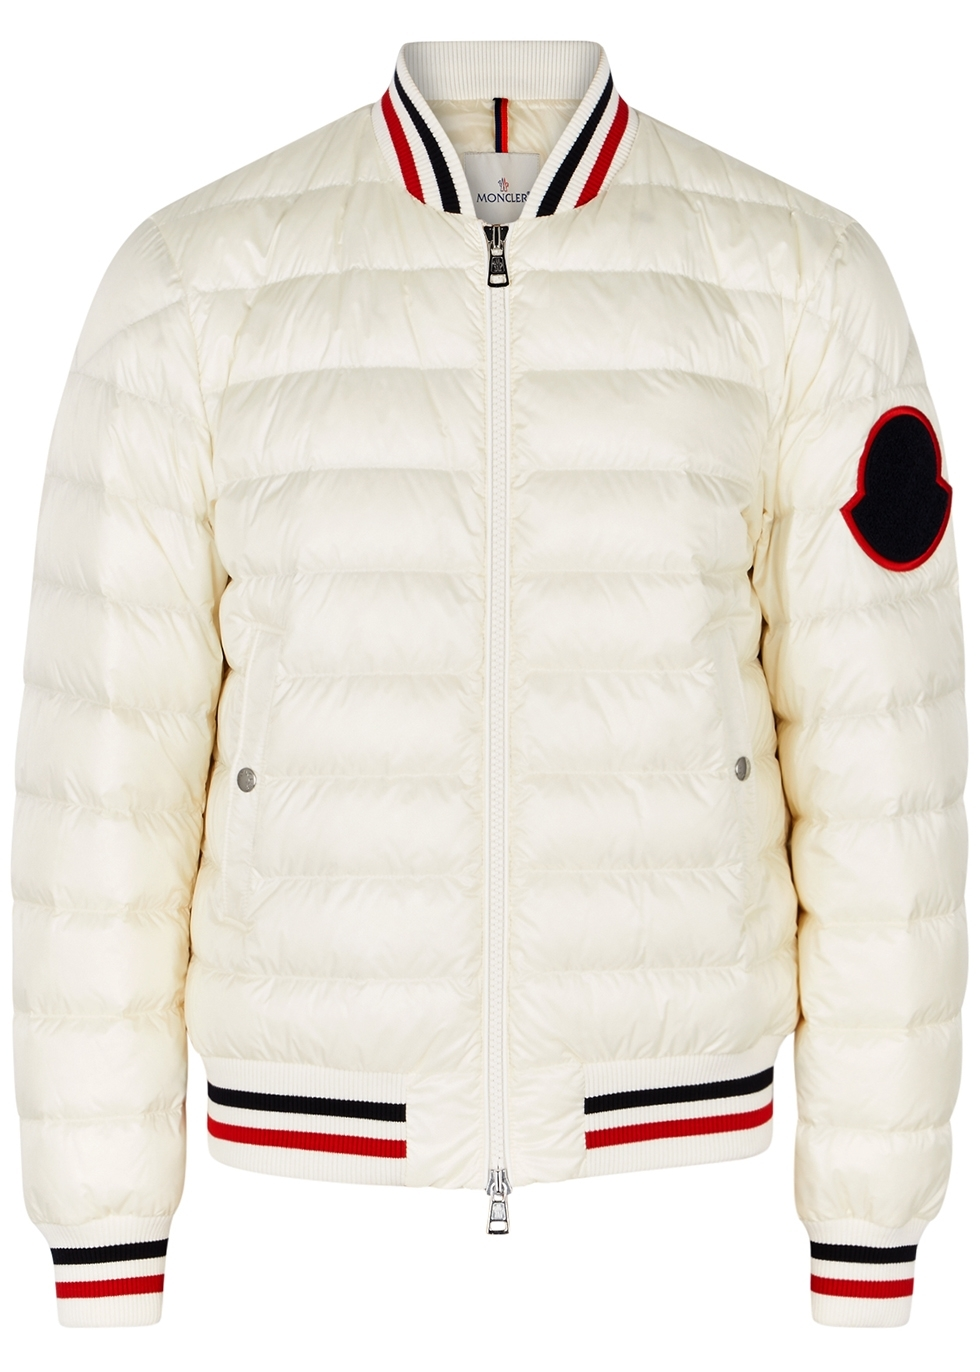 069a8028b Moncler - Mens - Harvey Nichols